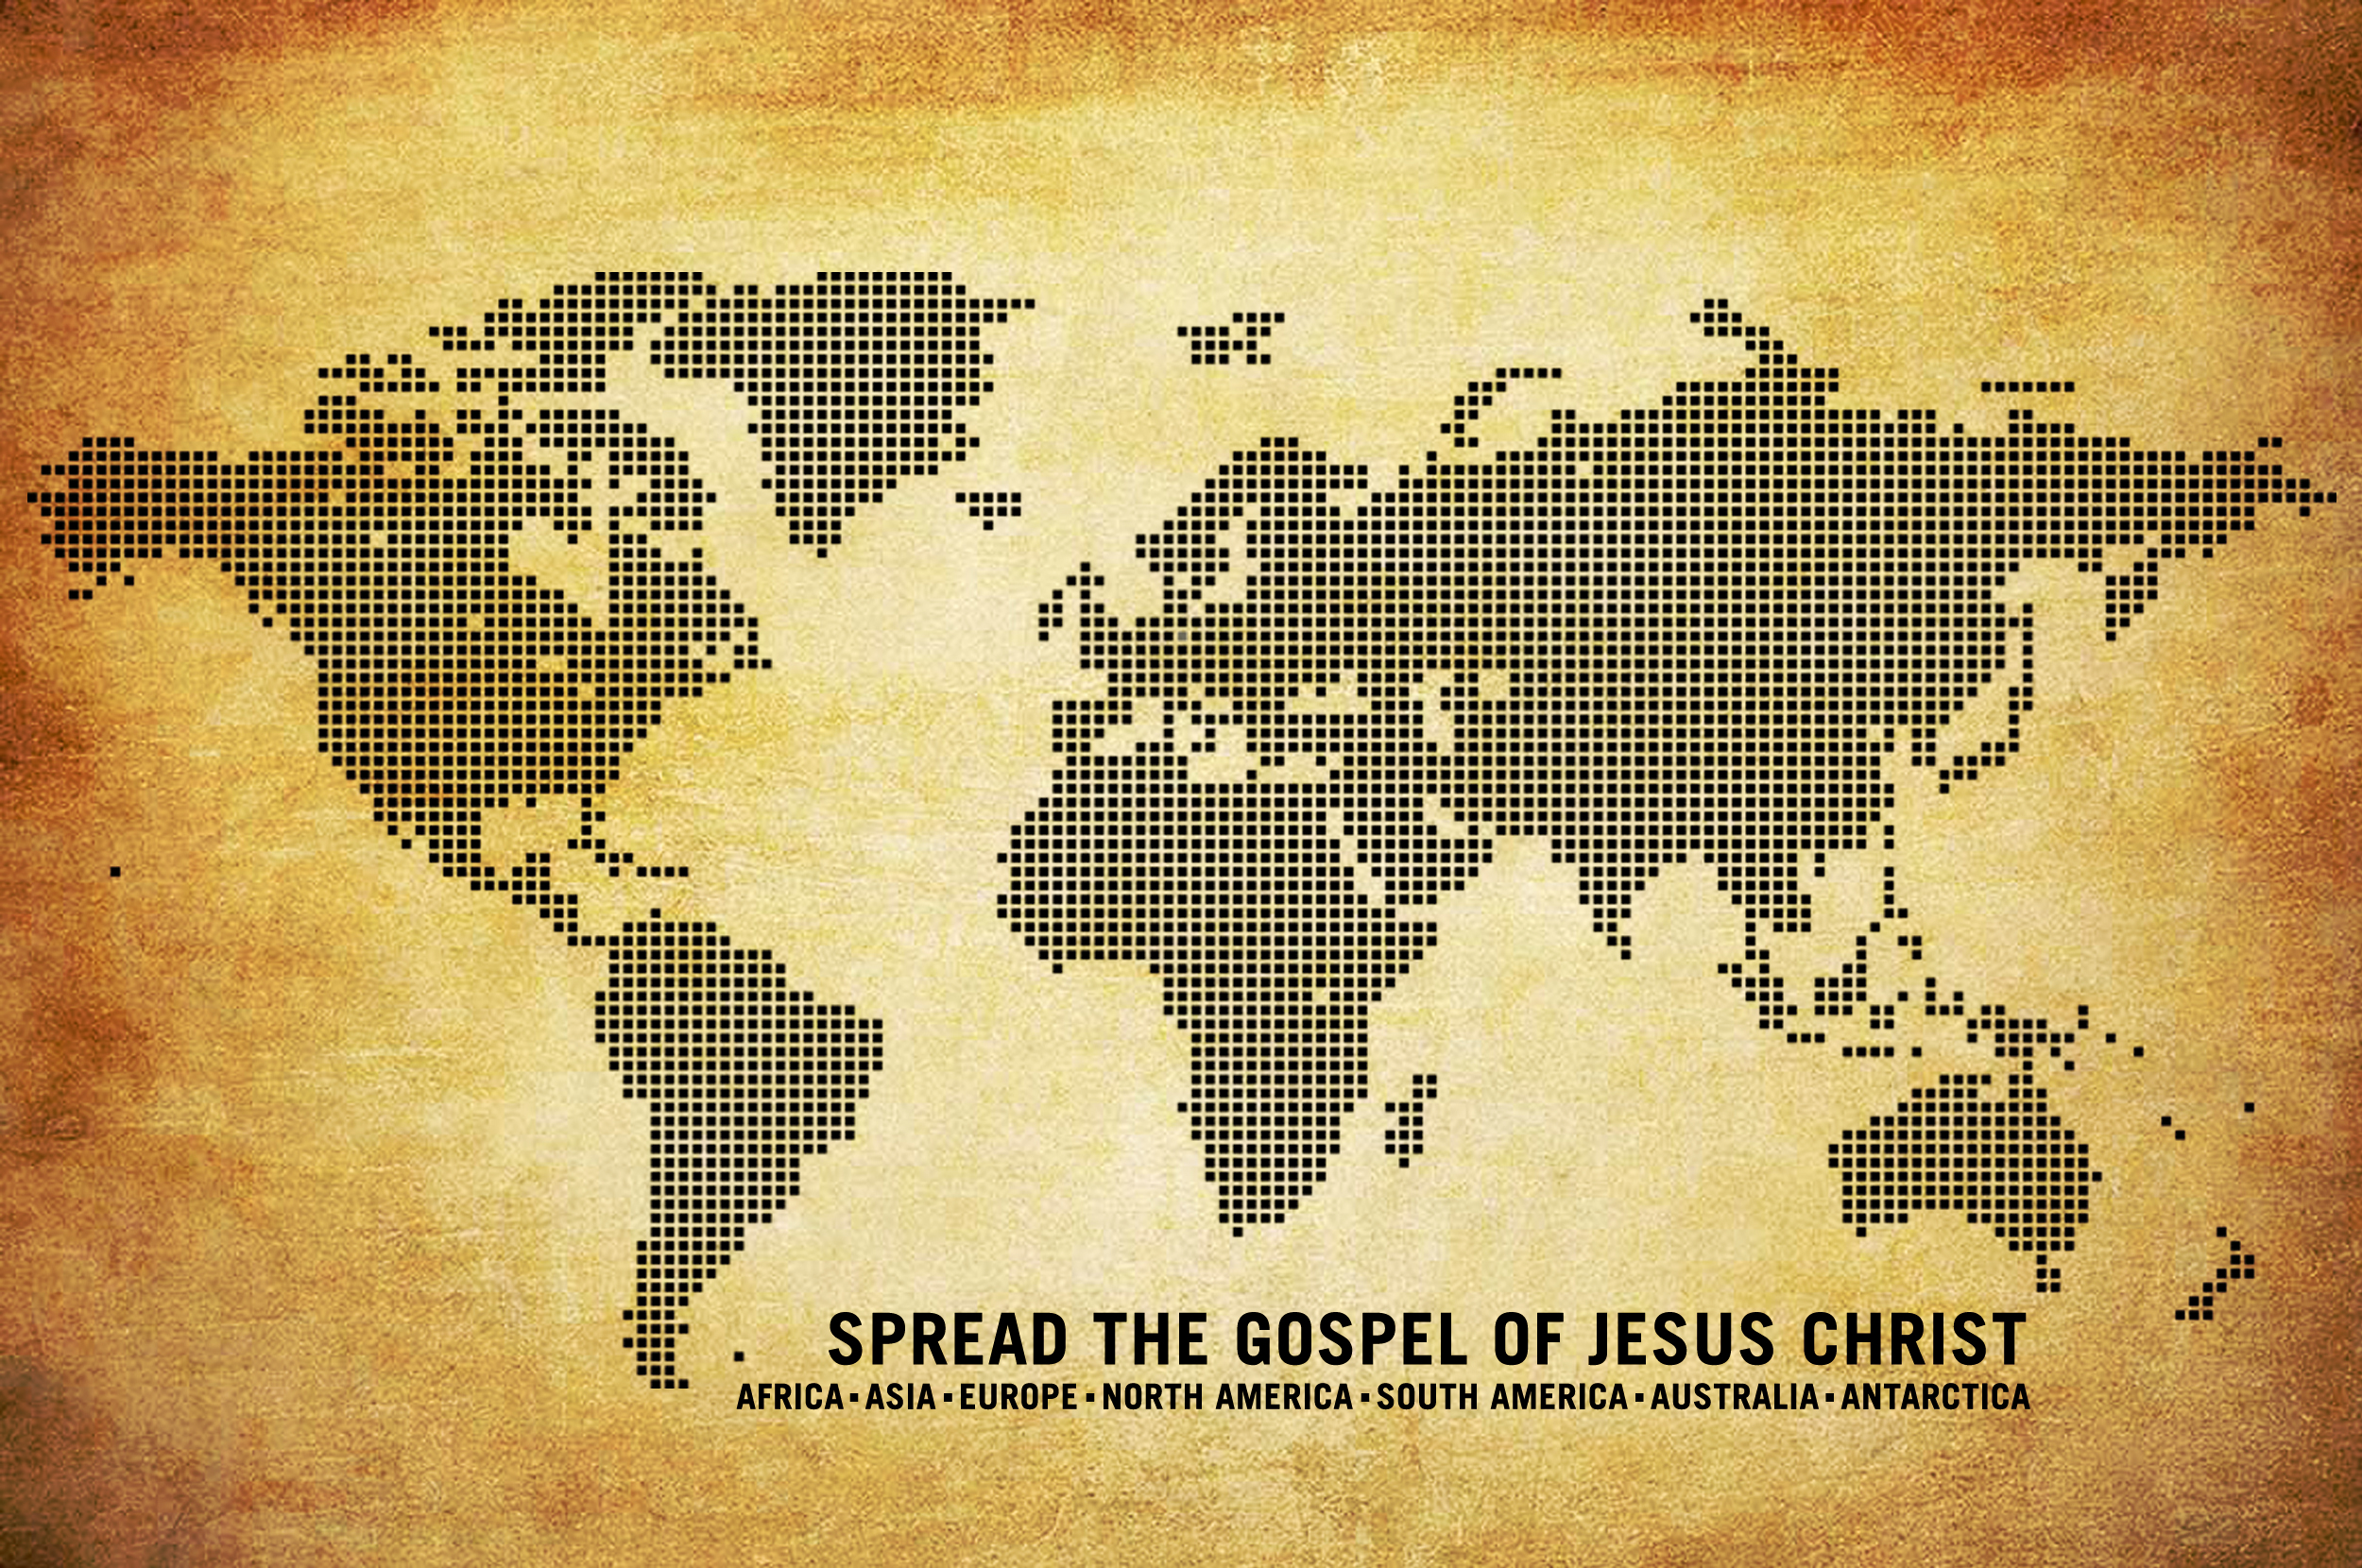 How to Spread the Word of God